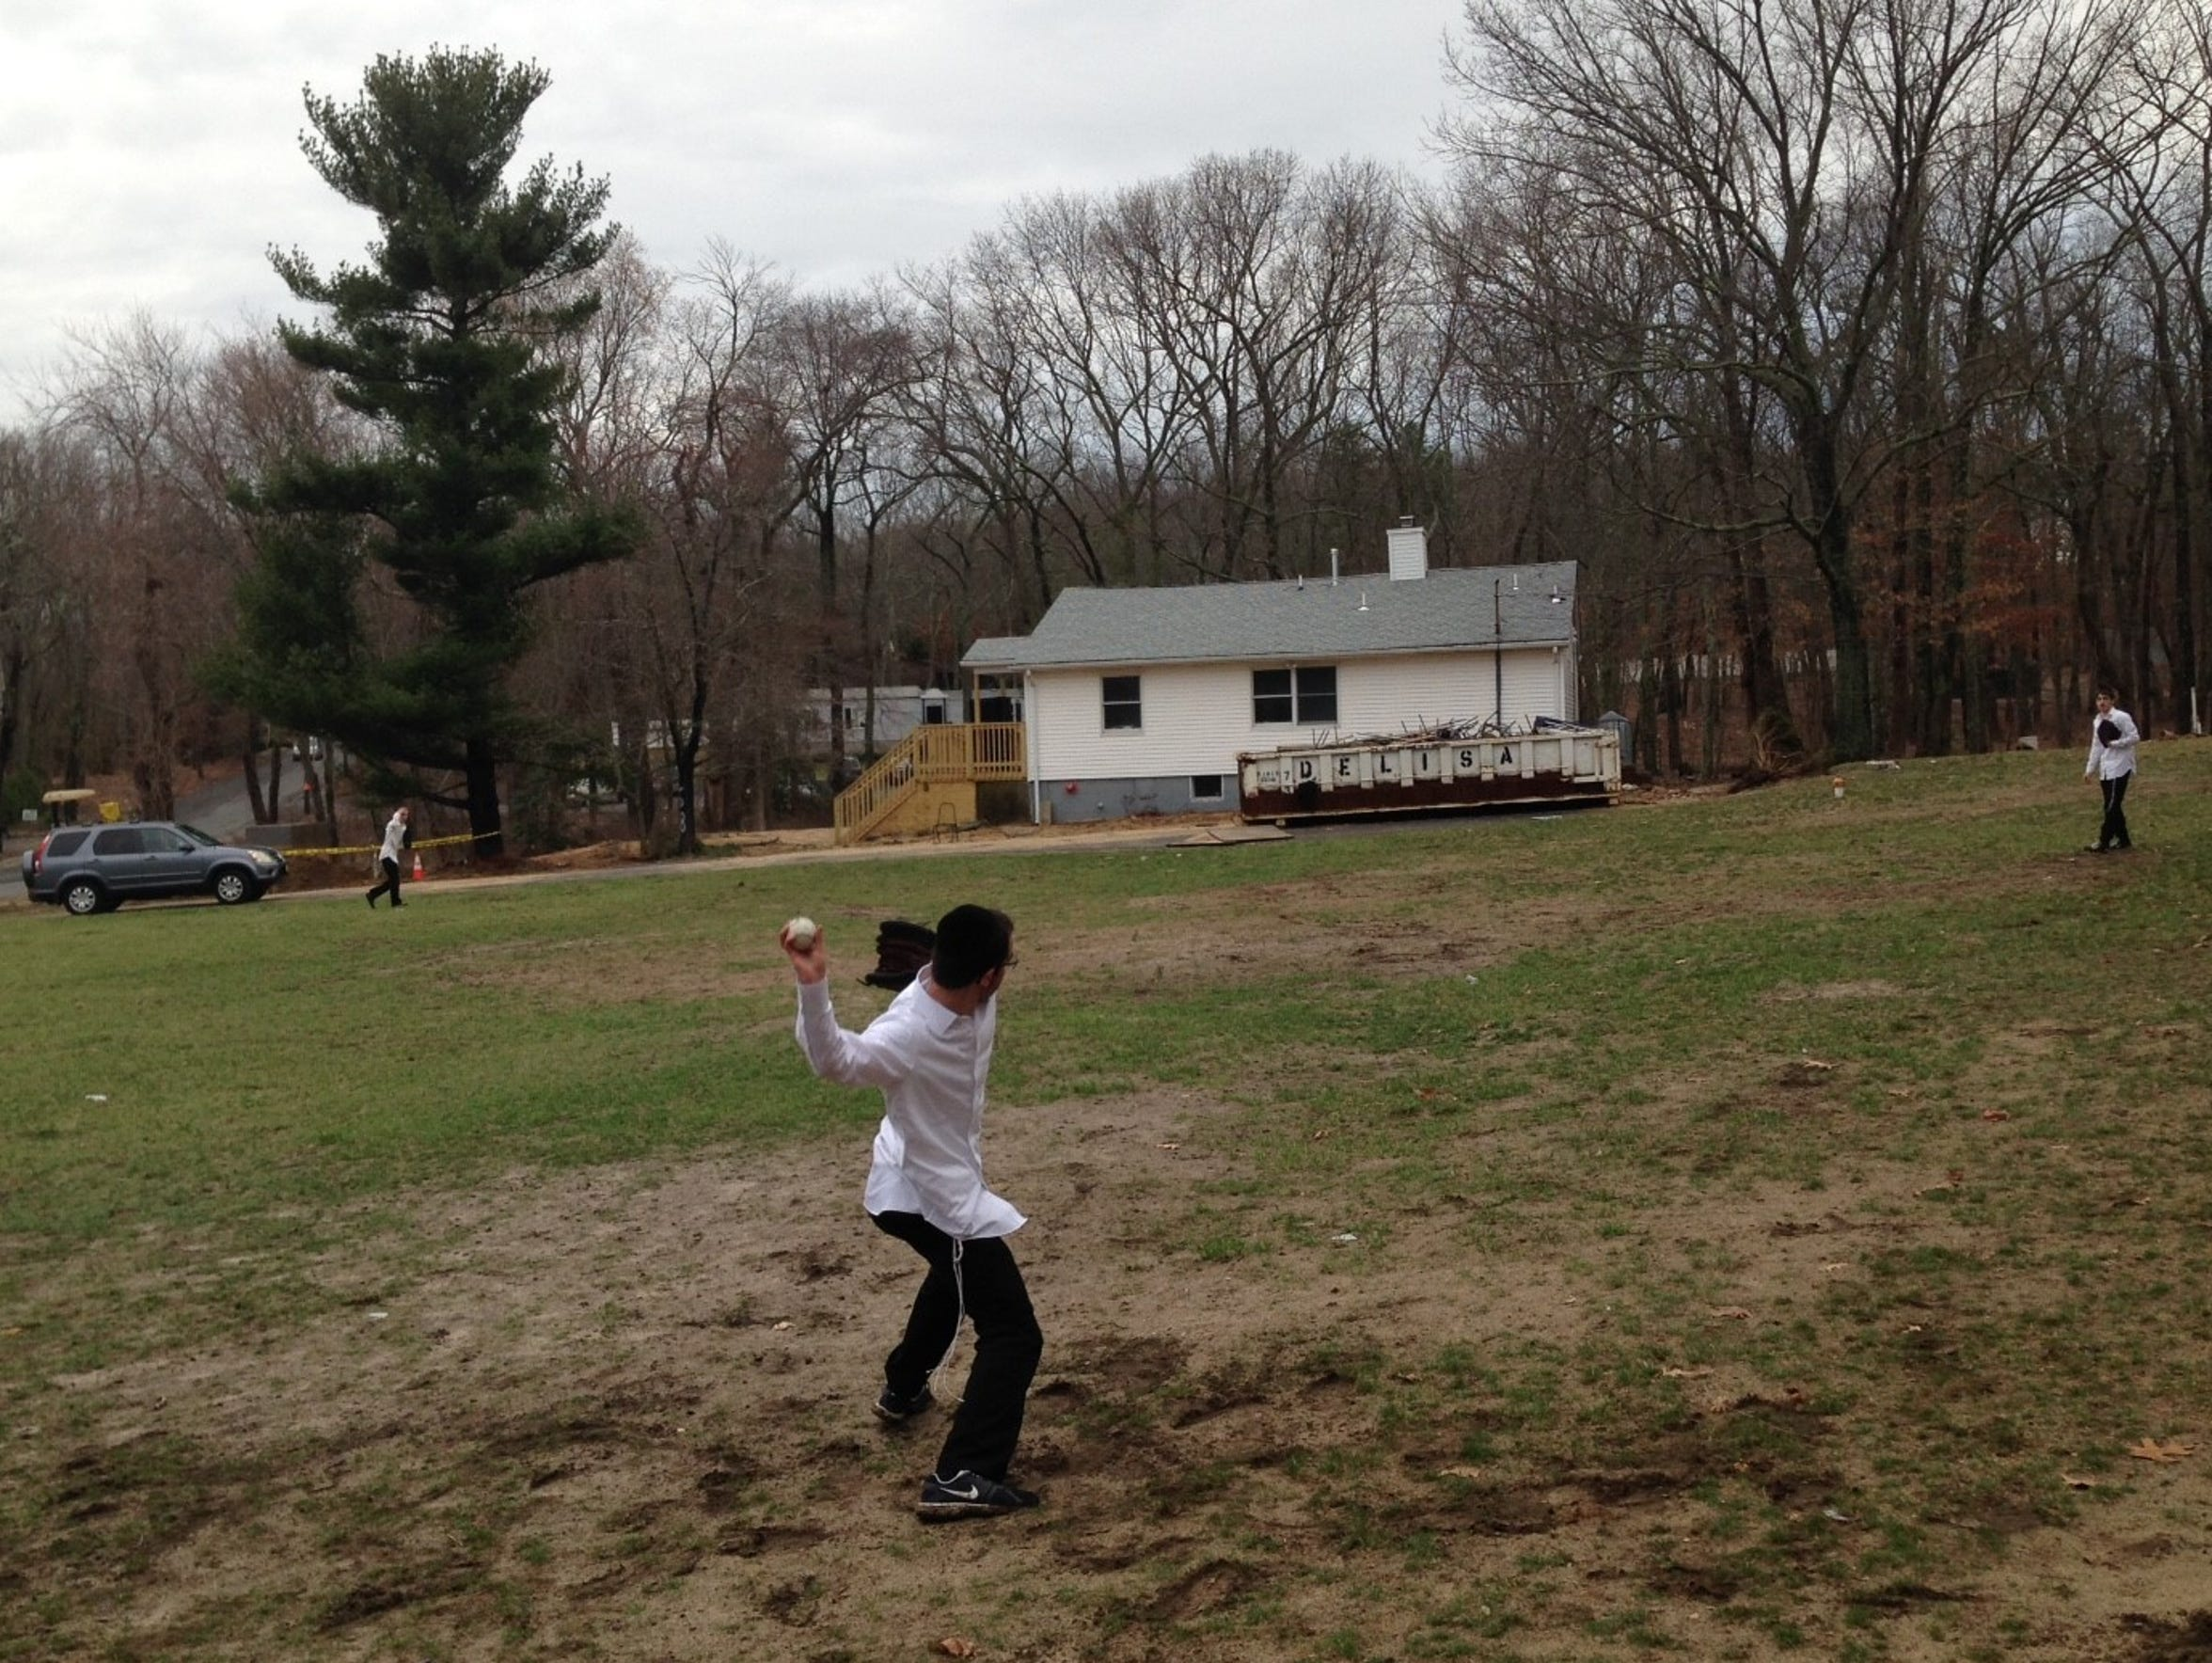 Three young yeshiva students play catch outside their